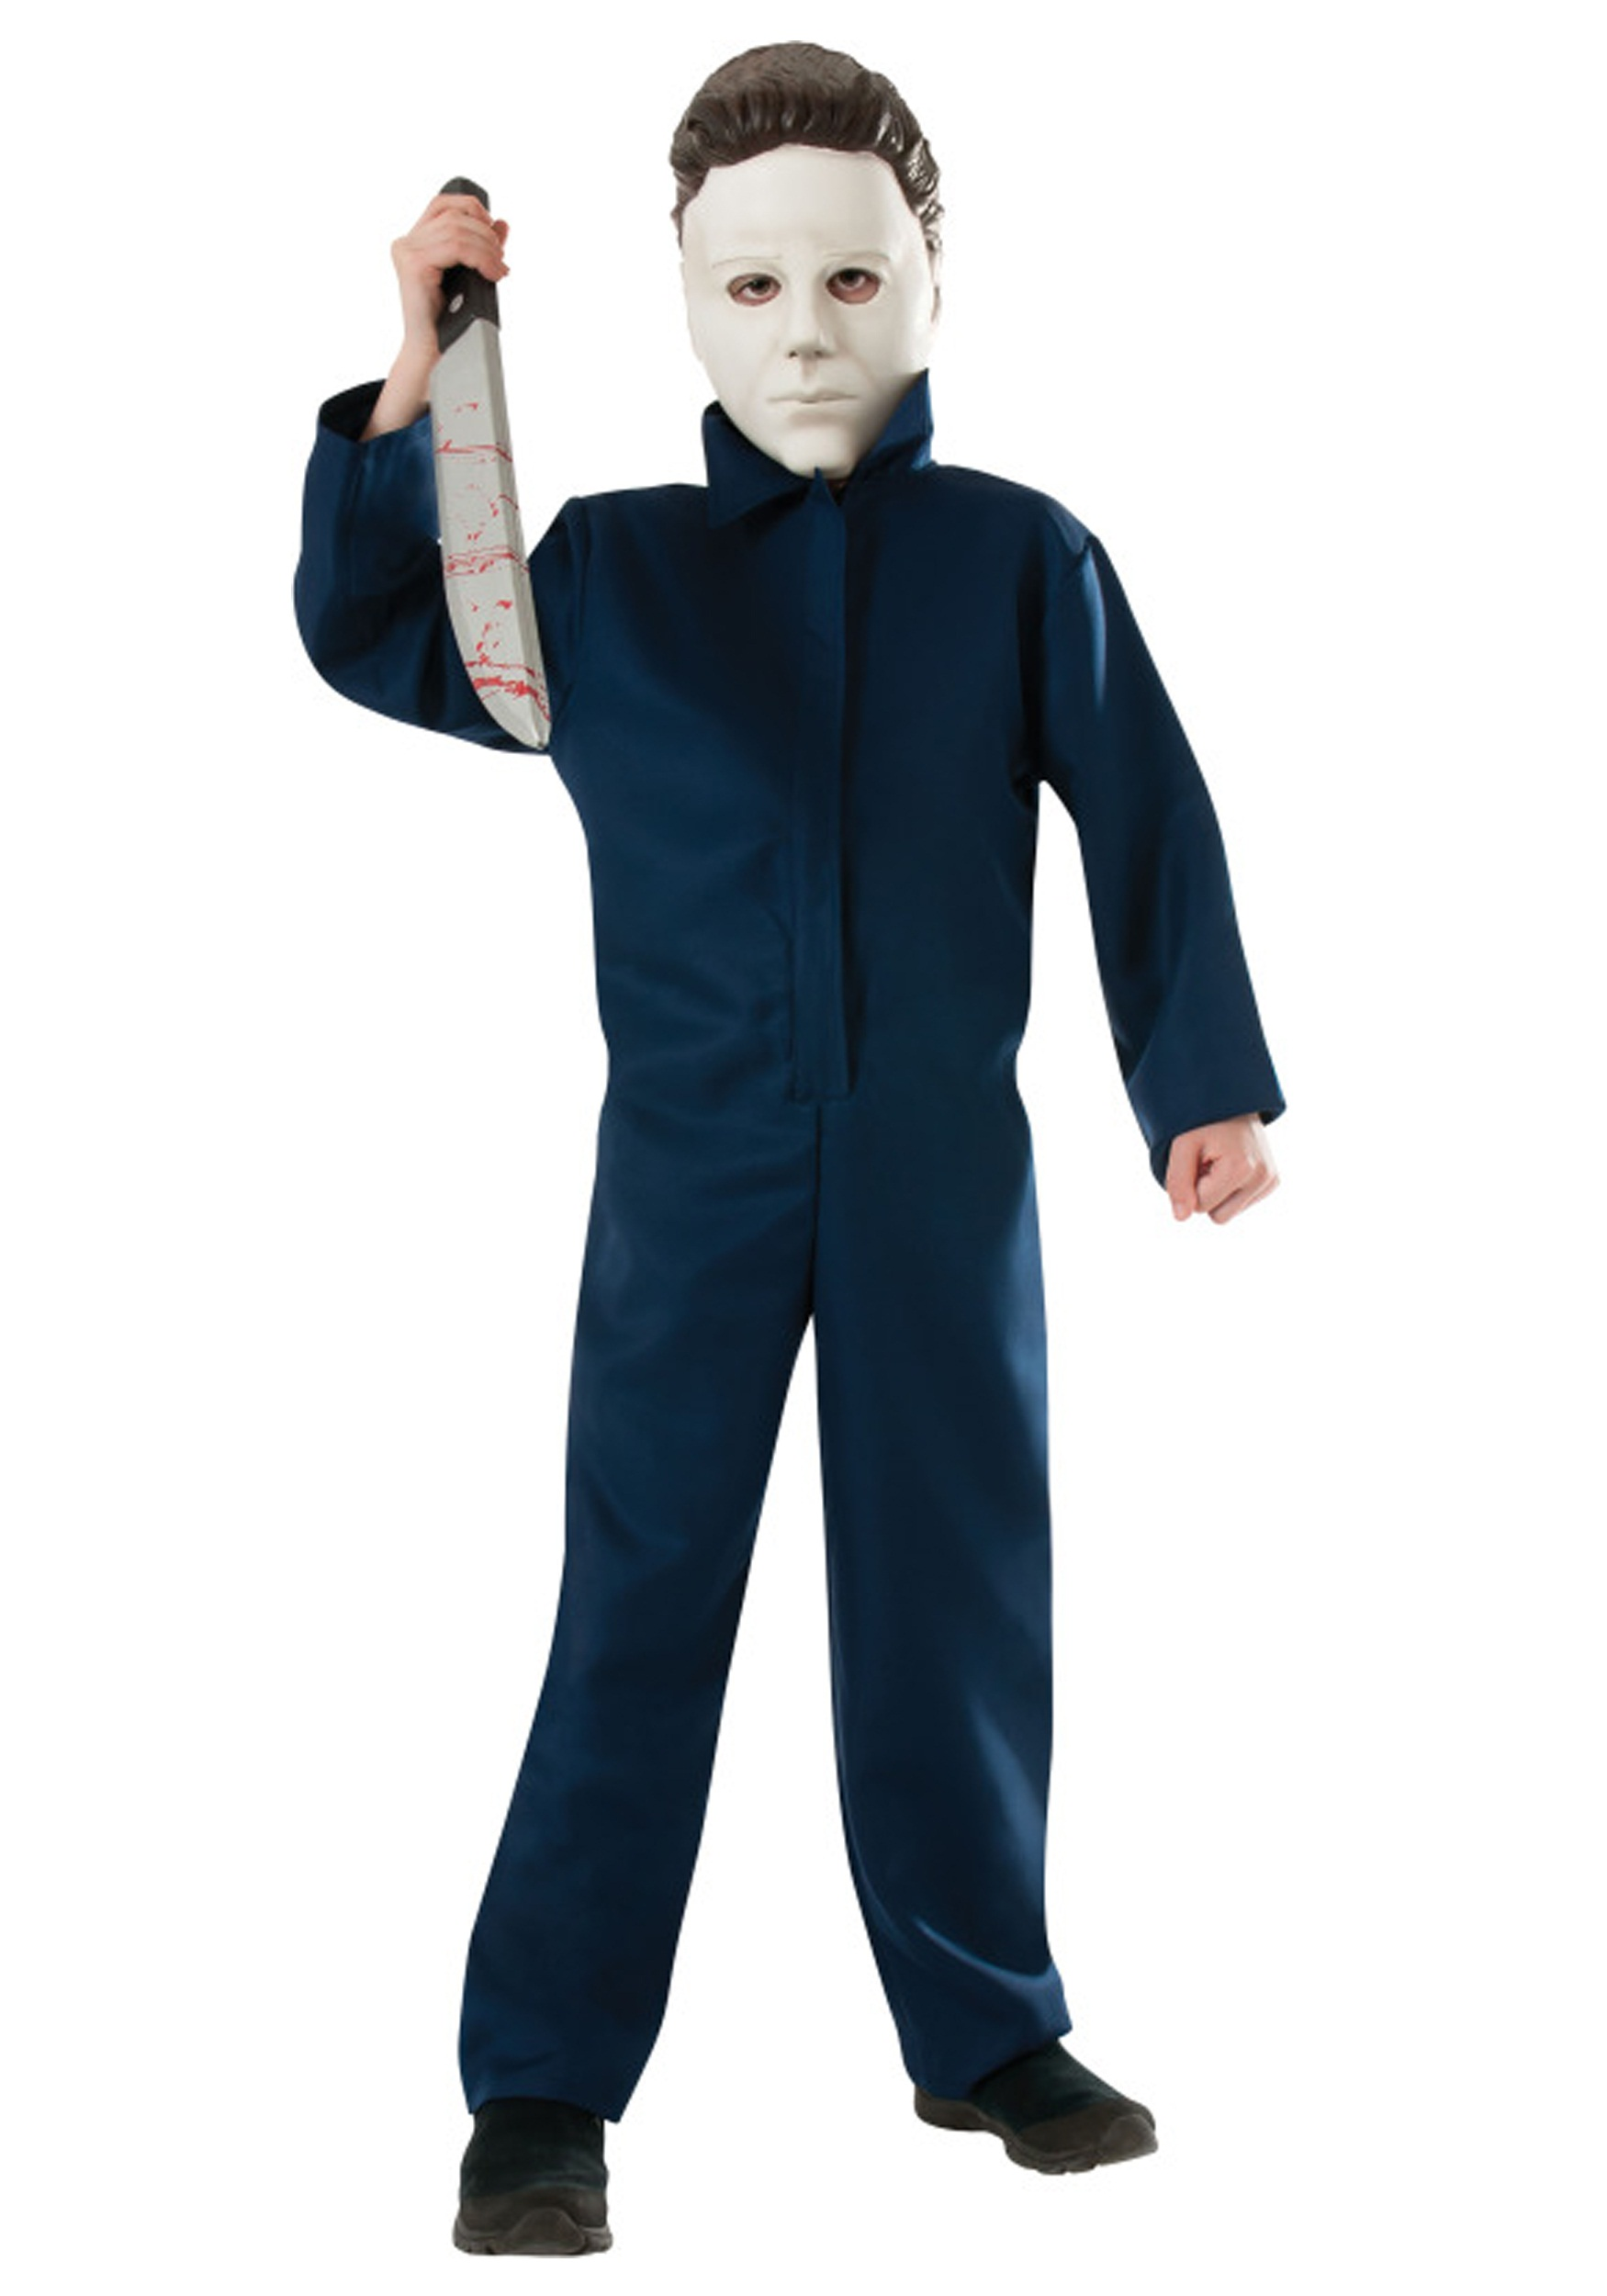 Scary Costumes For Halloween - HalloweenCostumes.com